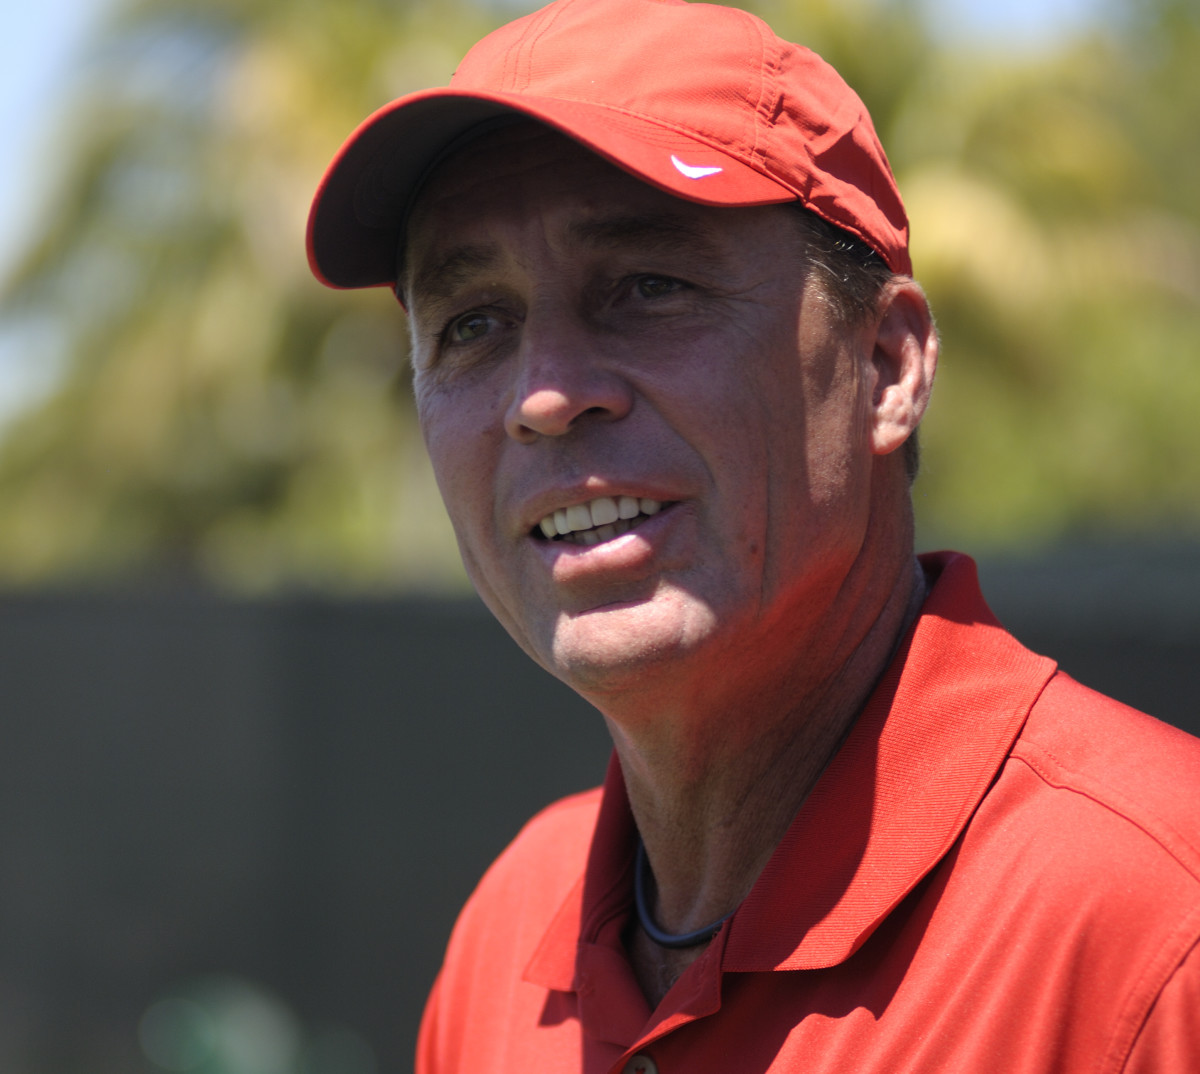 my idol Lendl today